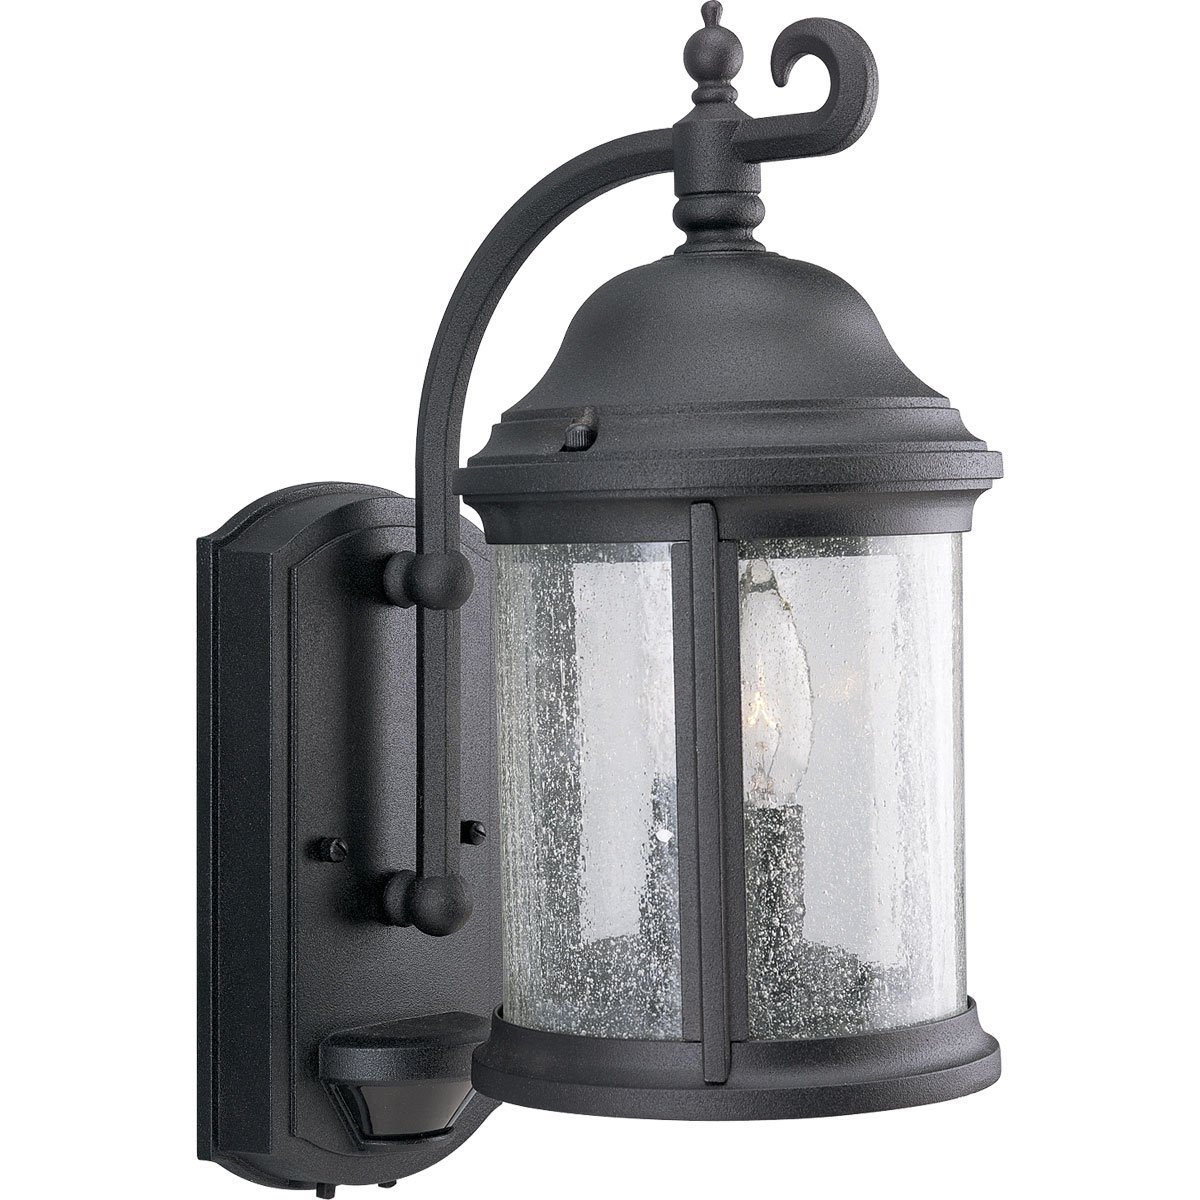 Progress lighting p5854 31 2 light ashmore collection wall lantern progress lighting p5854 31 2 light ashmore collection wall lantern with motion sensor textured black wall porch lights amazon aloadofball